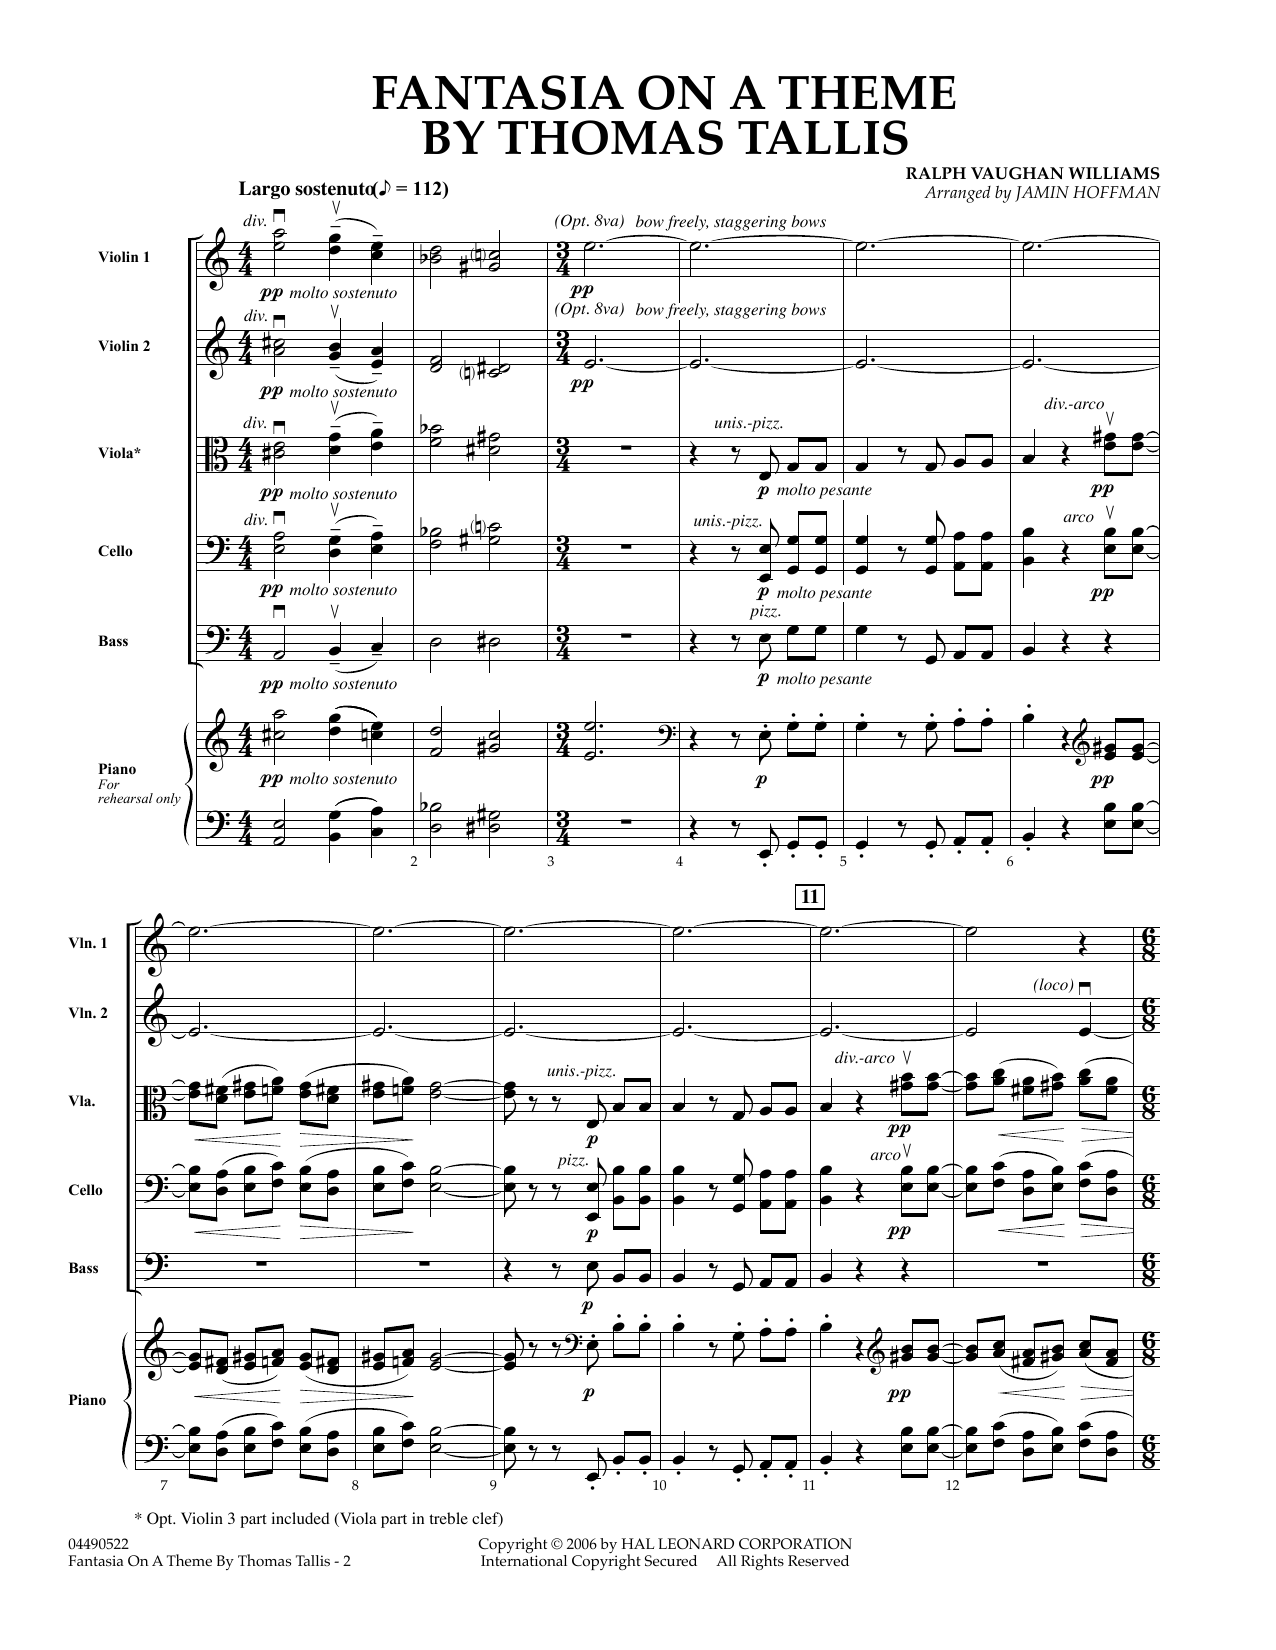 Fantasia on a Theme by Thomas Tallis (COMPLETE) sheet music for orchestra by Vaughan Williams, Jamin Hoffman and Ralph Vaughan Williams. Score Image Preview.